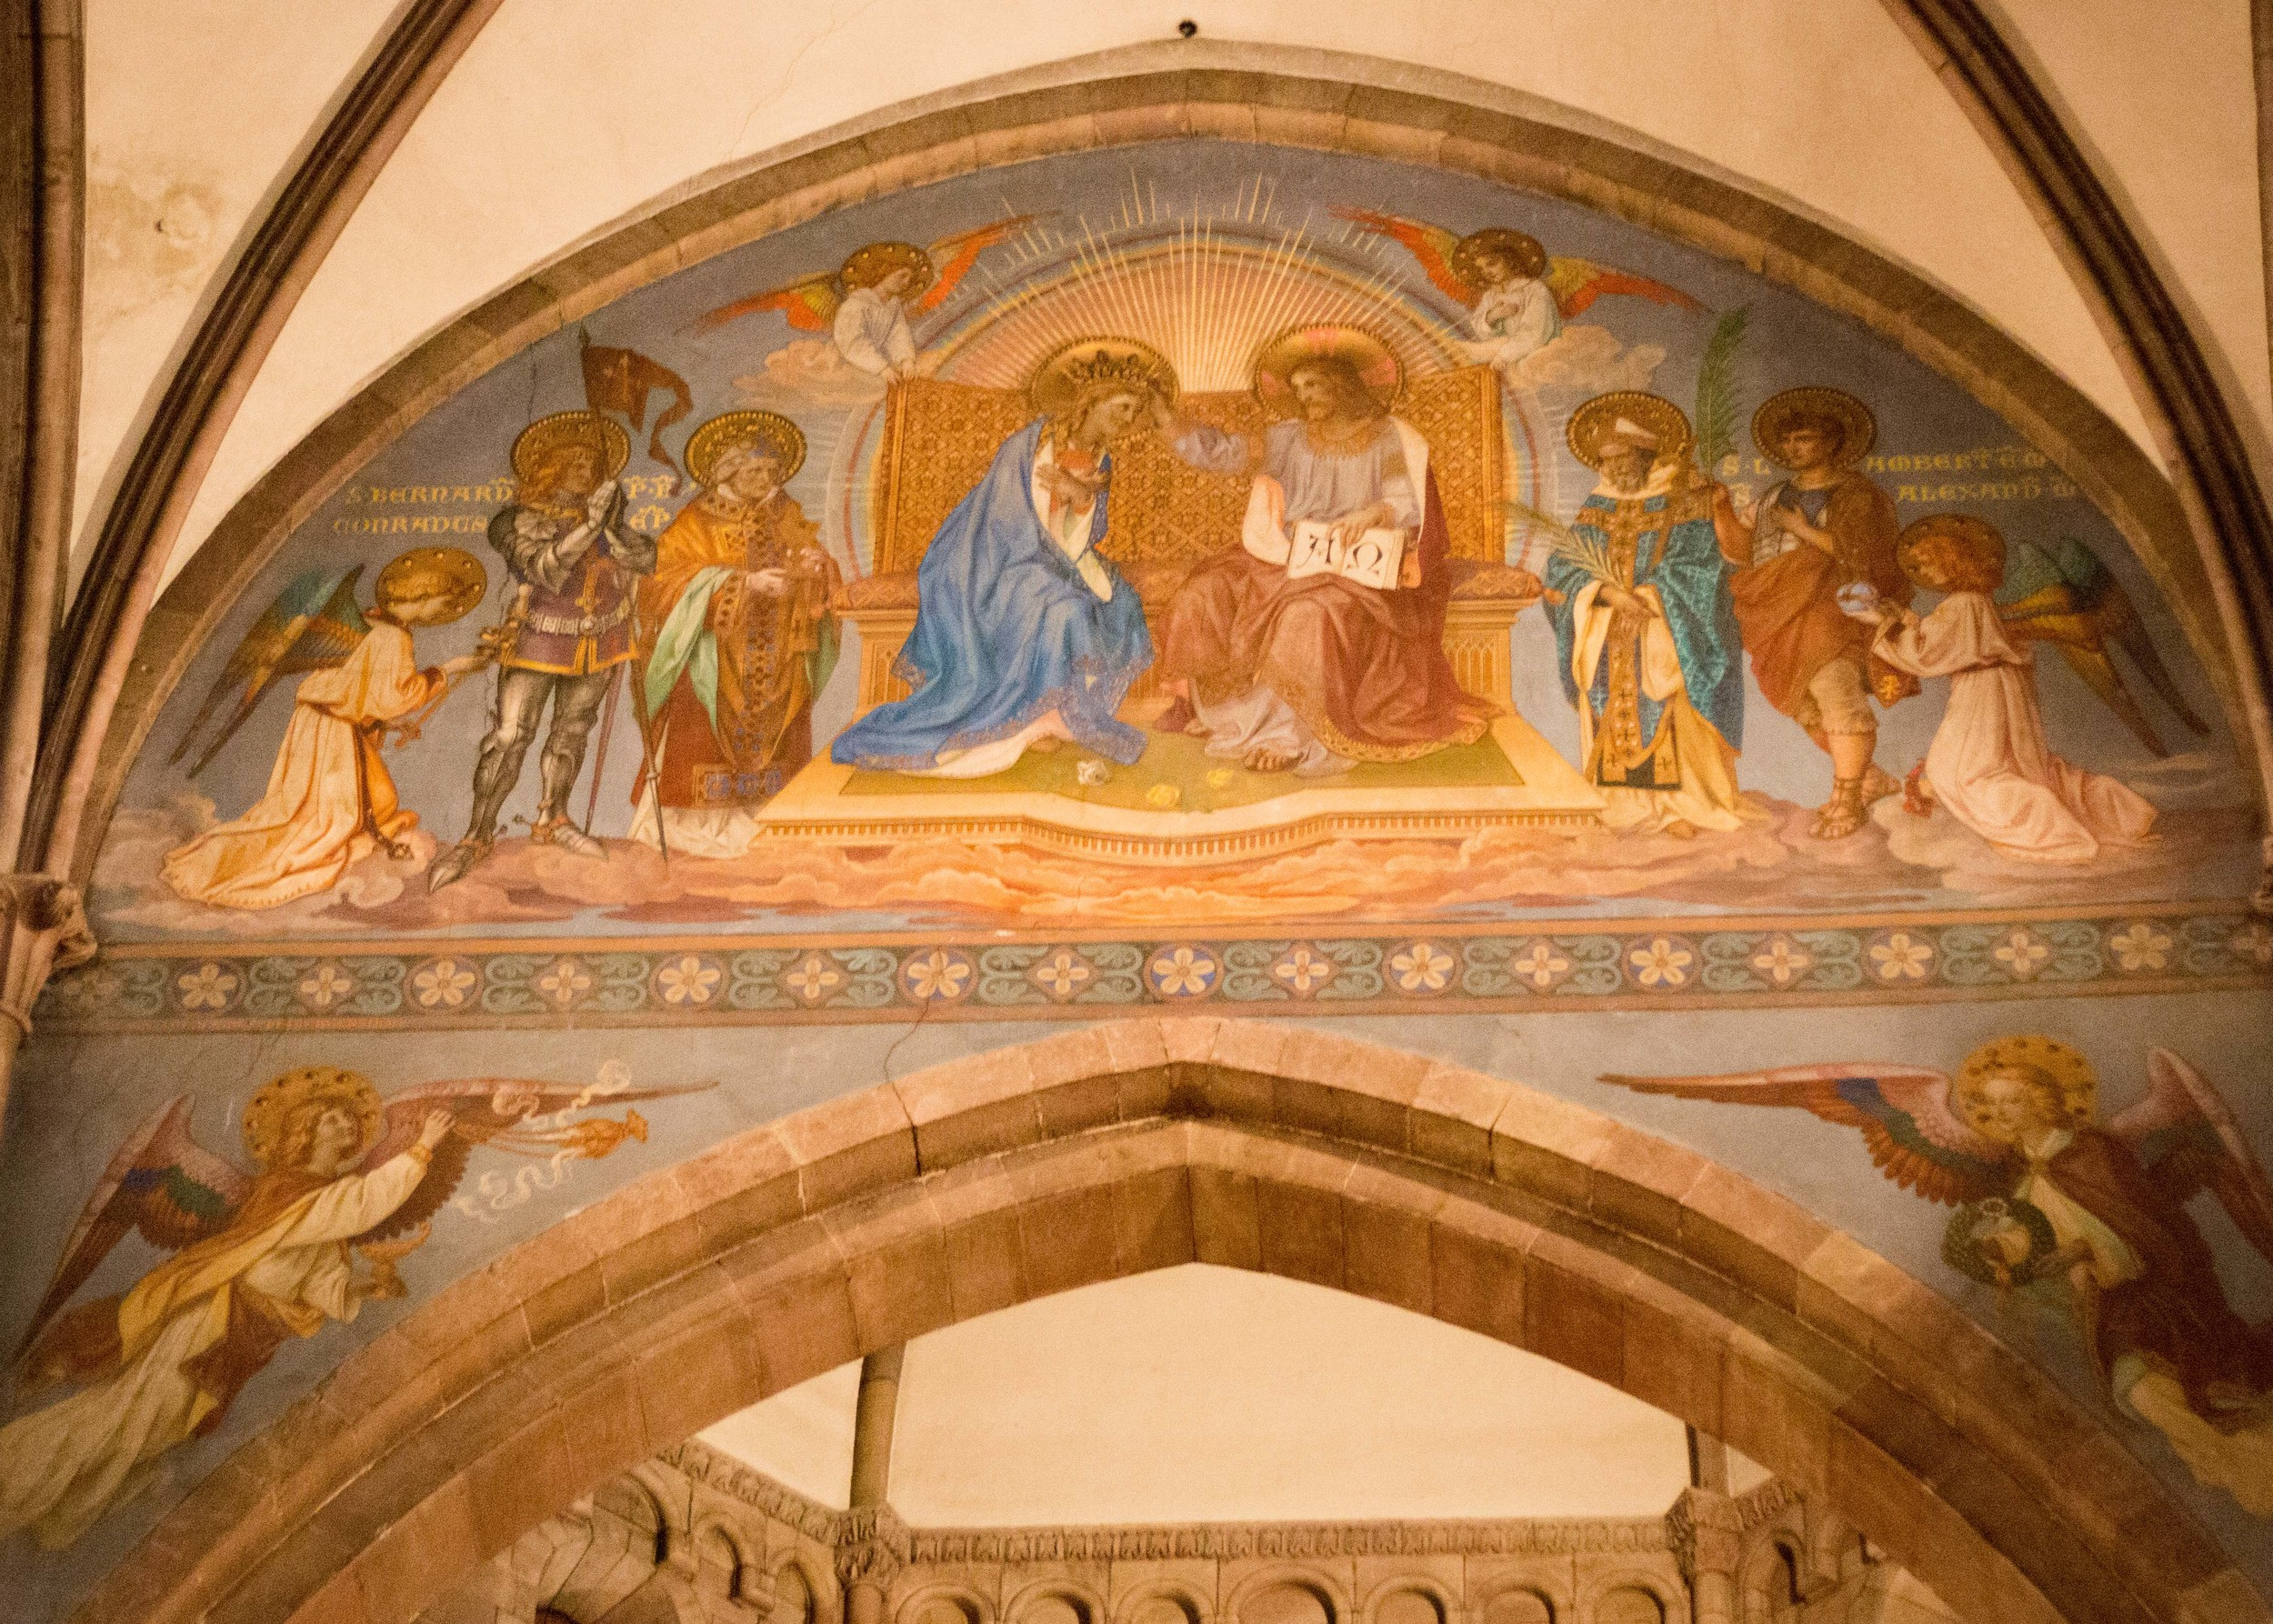 One of the manypaintings on the walls of the Freiburg cathedral